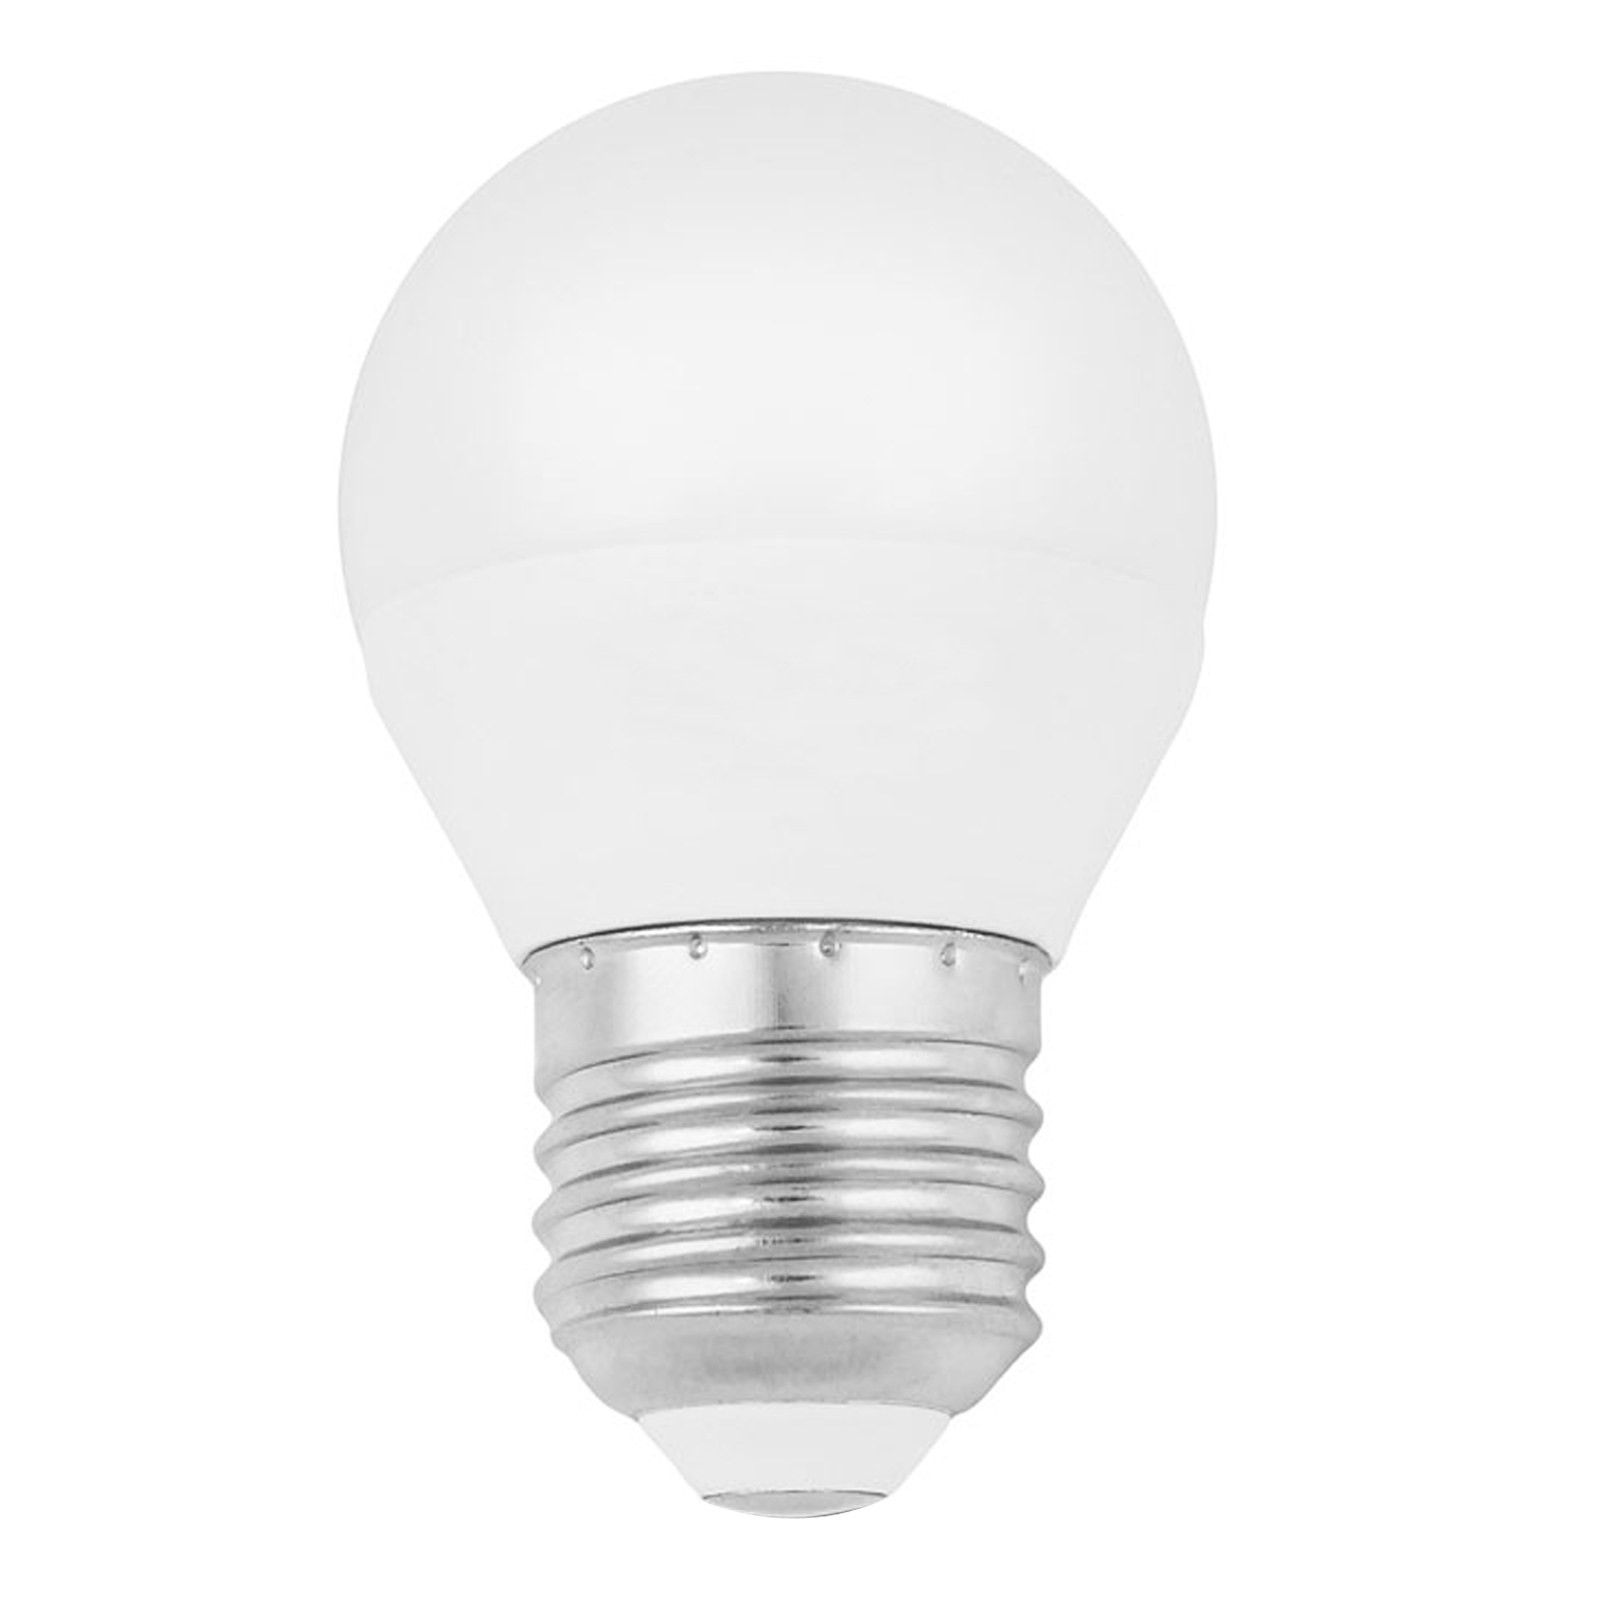 Lampada lampadina led e27 5 5 w watt mini sfera luce for Lampadina e27